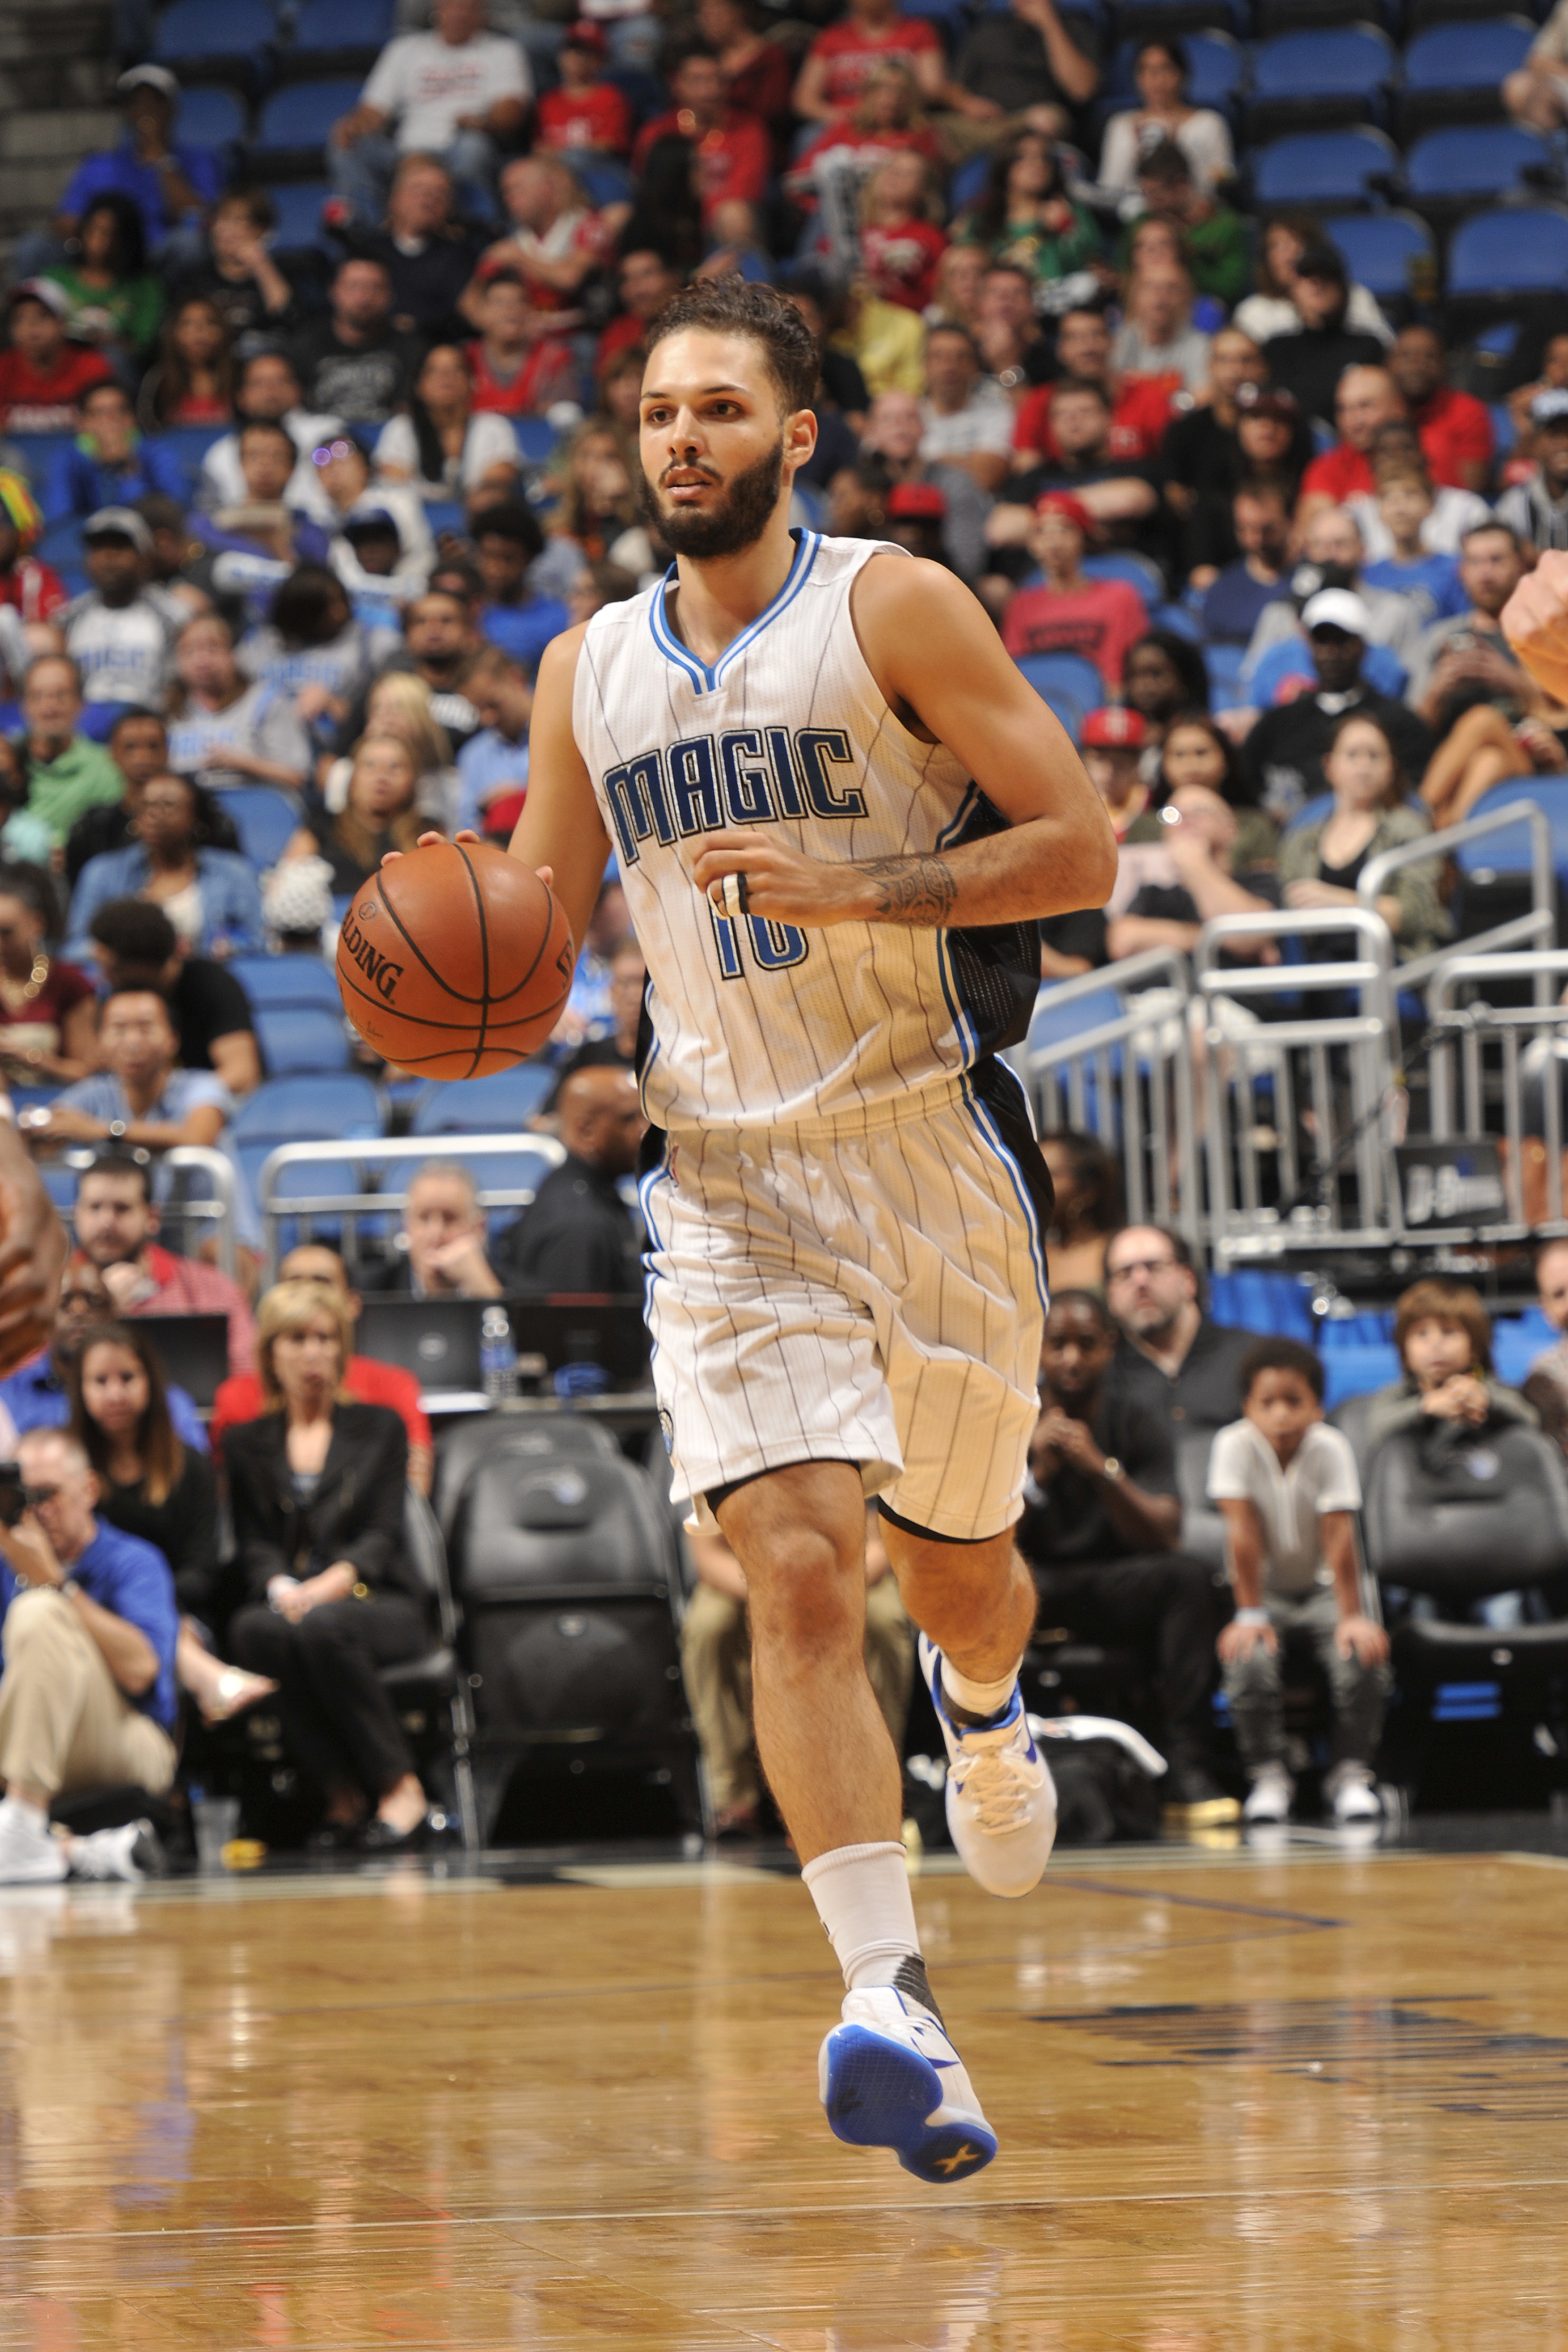 ORLANDO, FL - DECEMBER 23:  Evan Fournier #10 of the Orlando Magic handles the ball against the Houston Rockets on December 23, 2015 at Amway Center in Orlando, Florida. (Photo by Fernando Medina/NBAE via Getty Images)